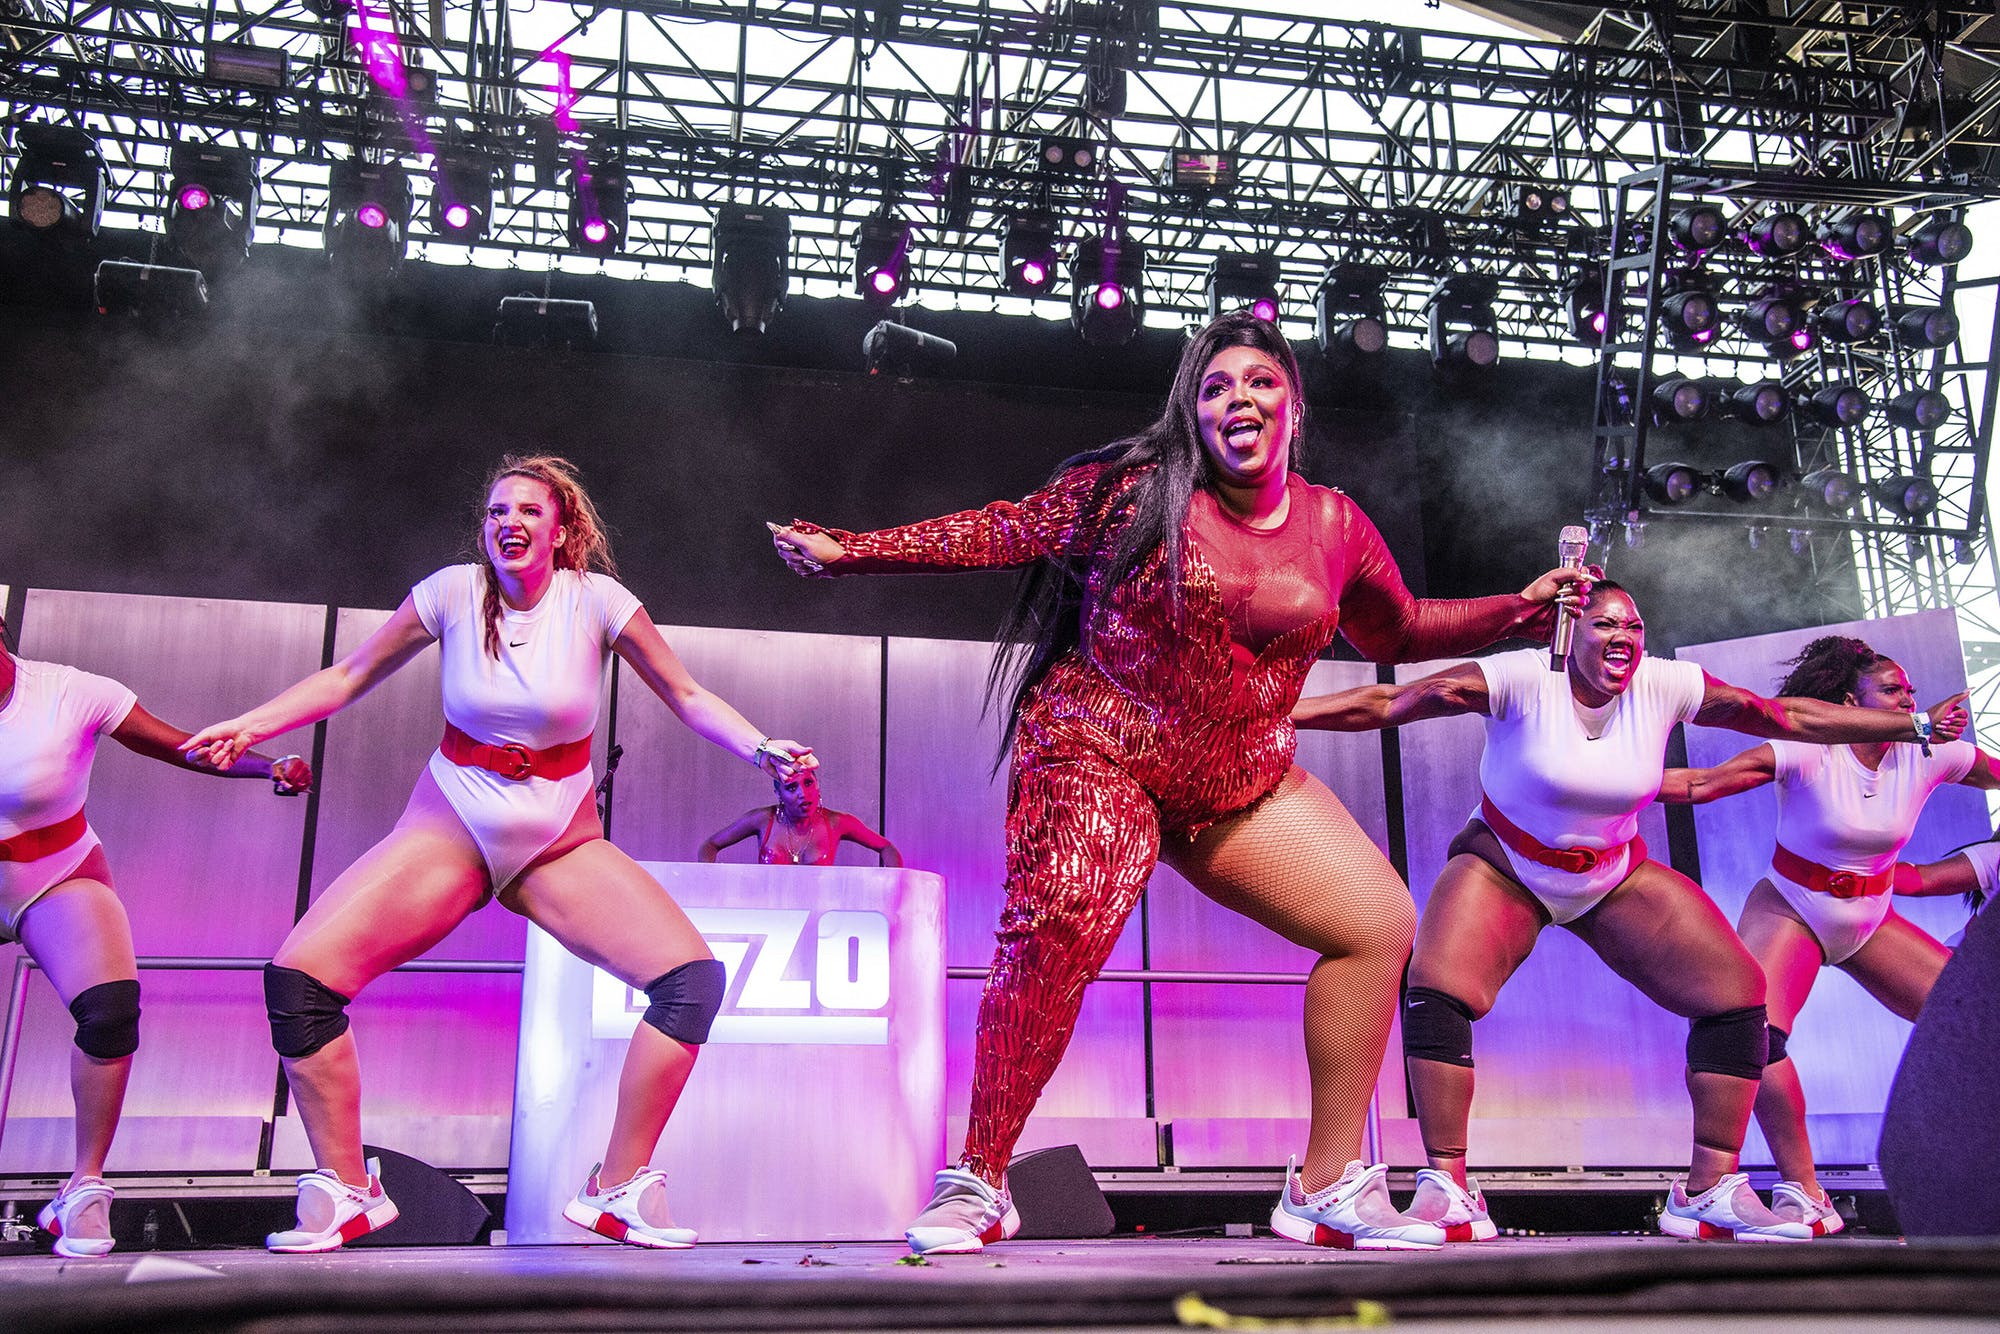 lizzo-performing-on-stage-with-her-dance-team-big-grrls